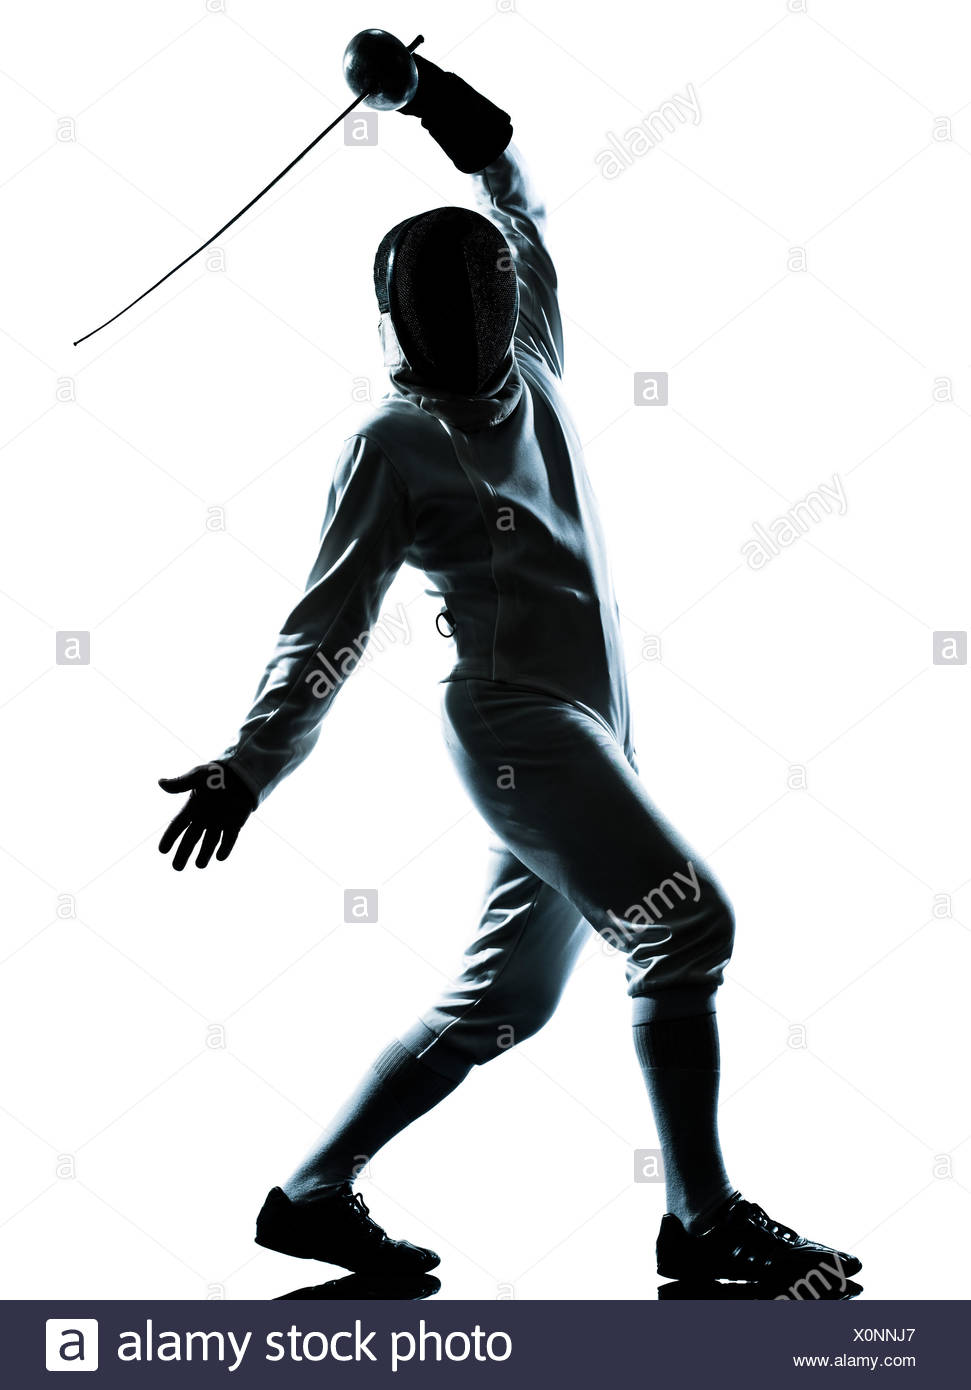 971x1390 One Man Fencing Silhouette In Stock Photos Amp One Man Fencing